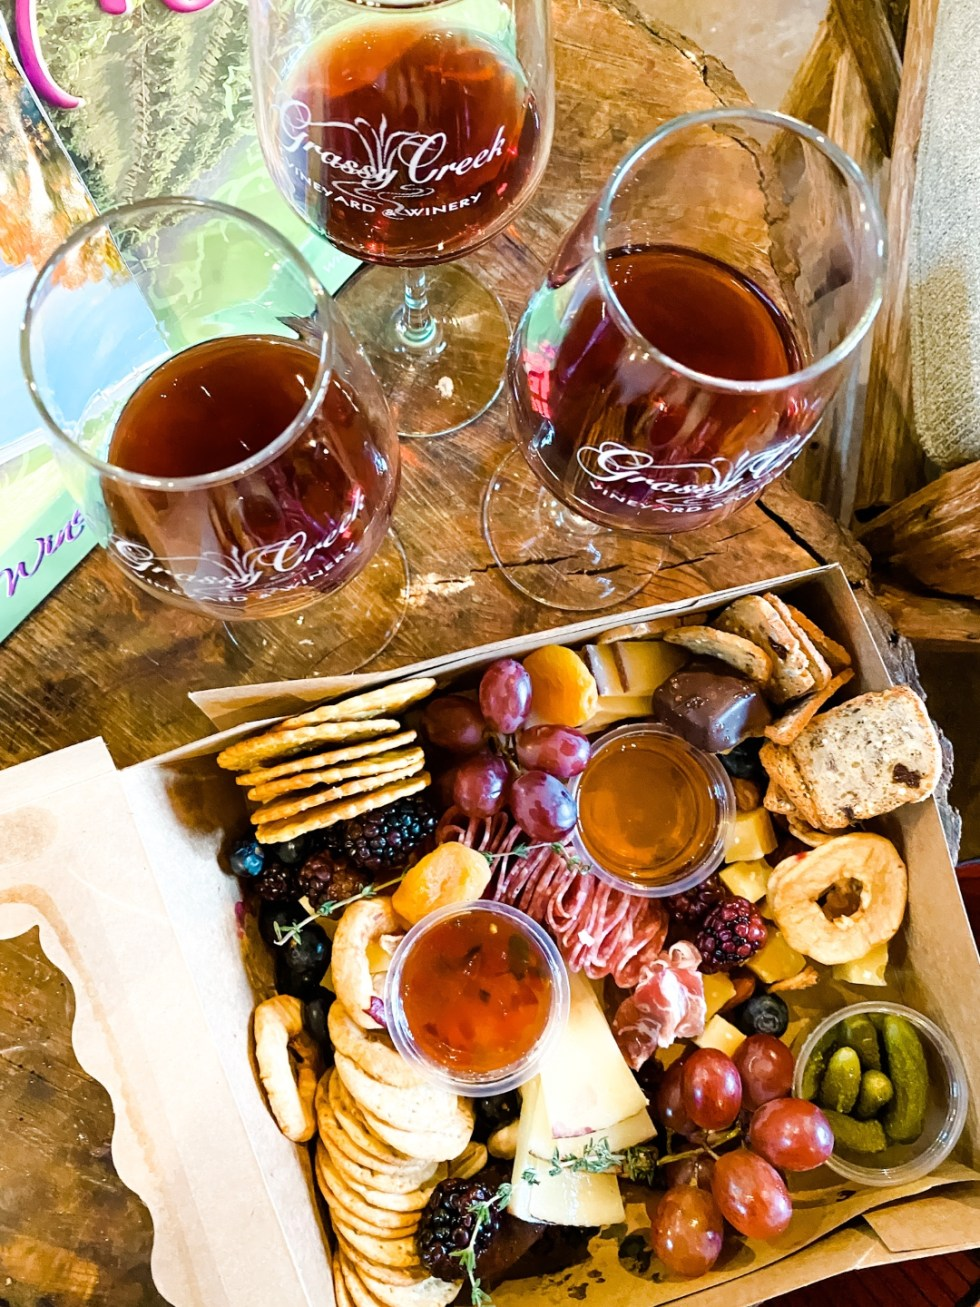 Western NC Wineries: 6 Wineries to Visit During your Next Girls' Weekend - I'm Fixin' To - @mbg0112 |Western NC Wineries by popular NC blog, I'm Fixin' To: image of glasses of red wine next to a charcuterie box.